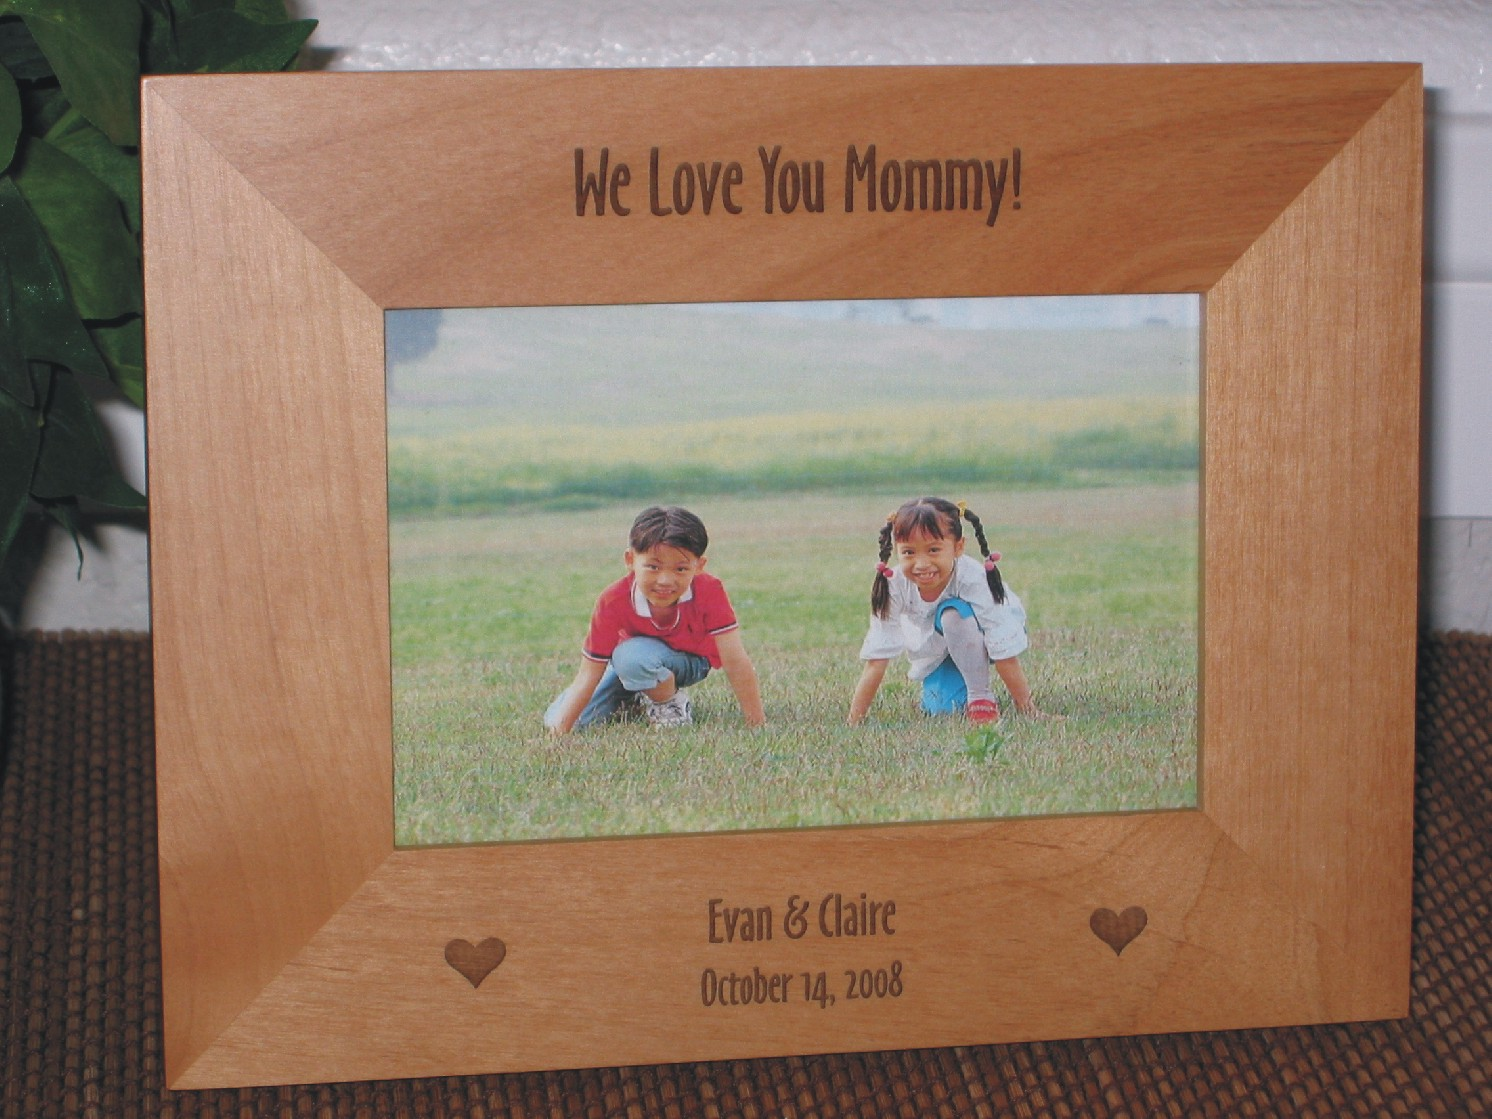 We Love Mom Picture Frame Personalized Frame Laser Engraved Hearts